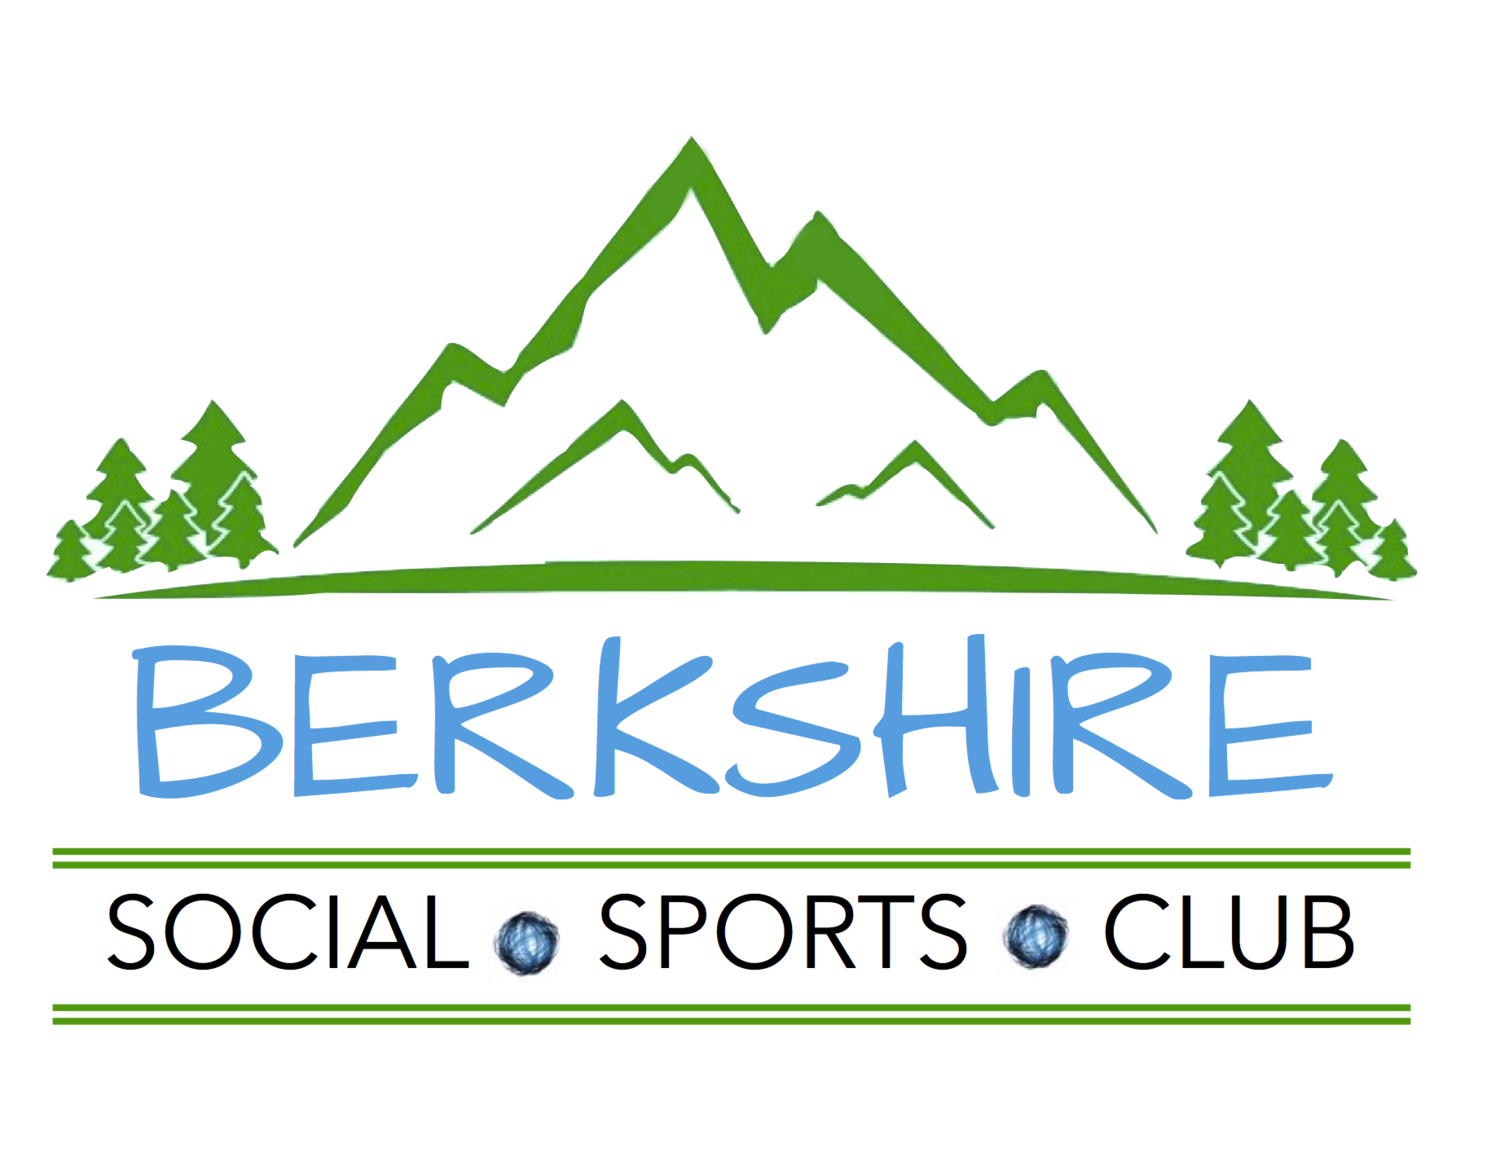 Berkshire Social Sports Club